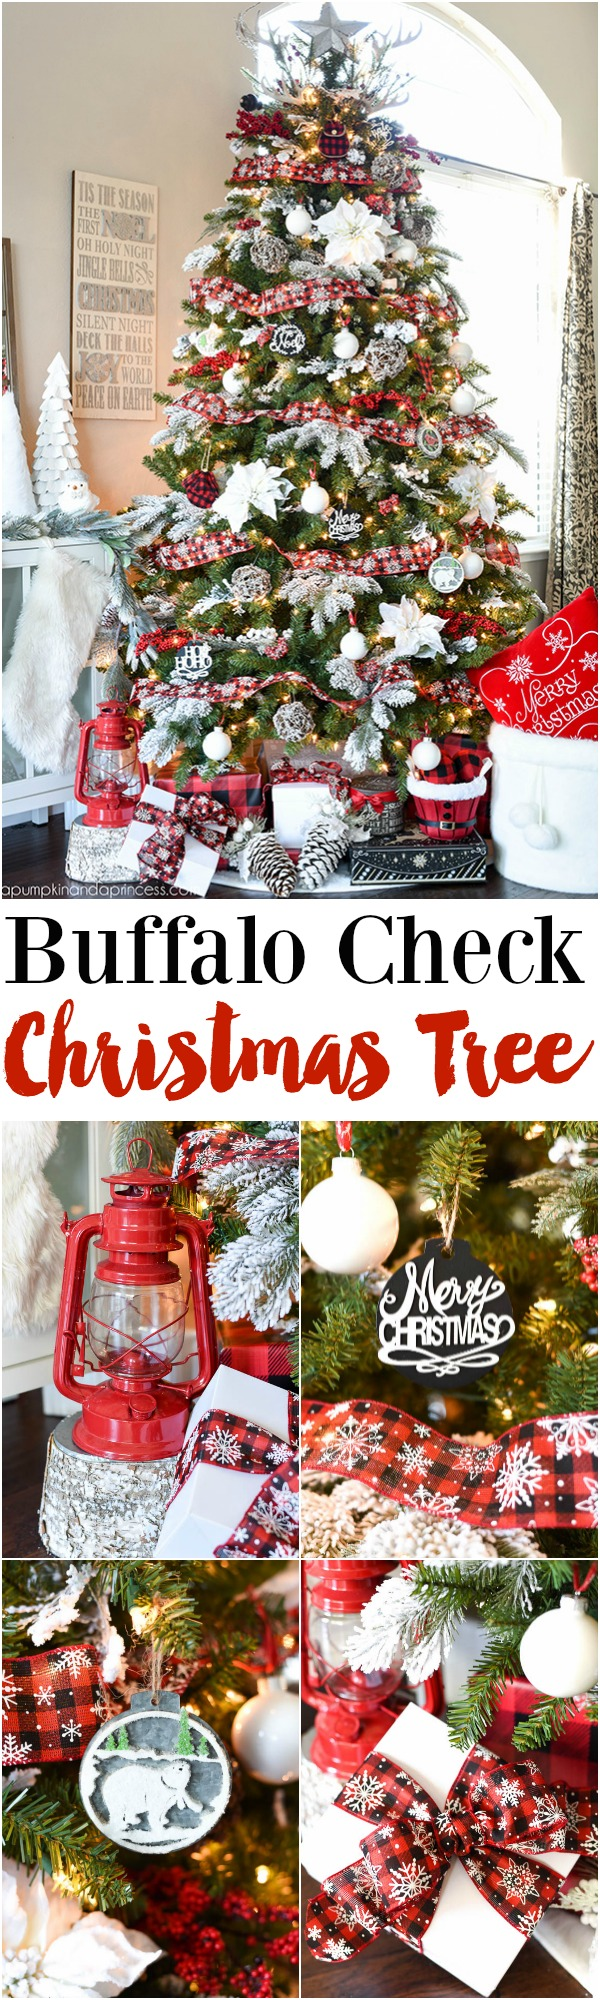 buffalo check christmas tree michaels dream tree - Red And Black Plaid Christmas Decor